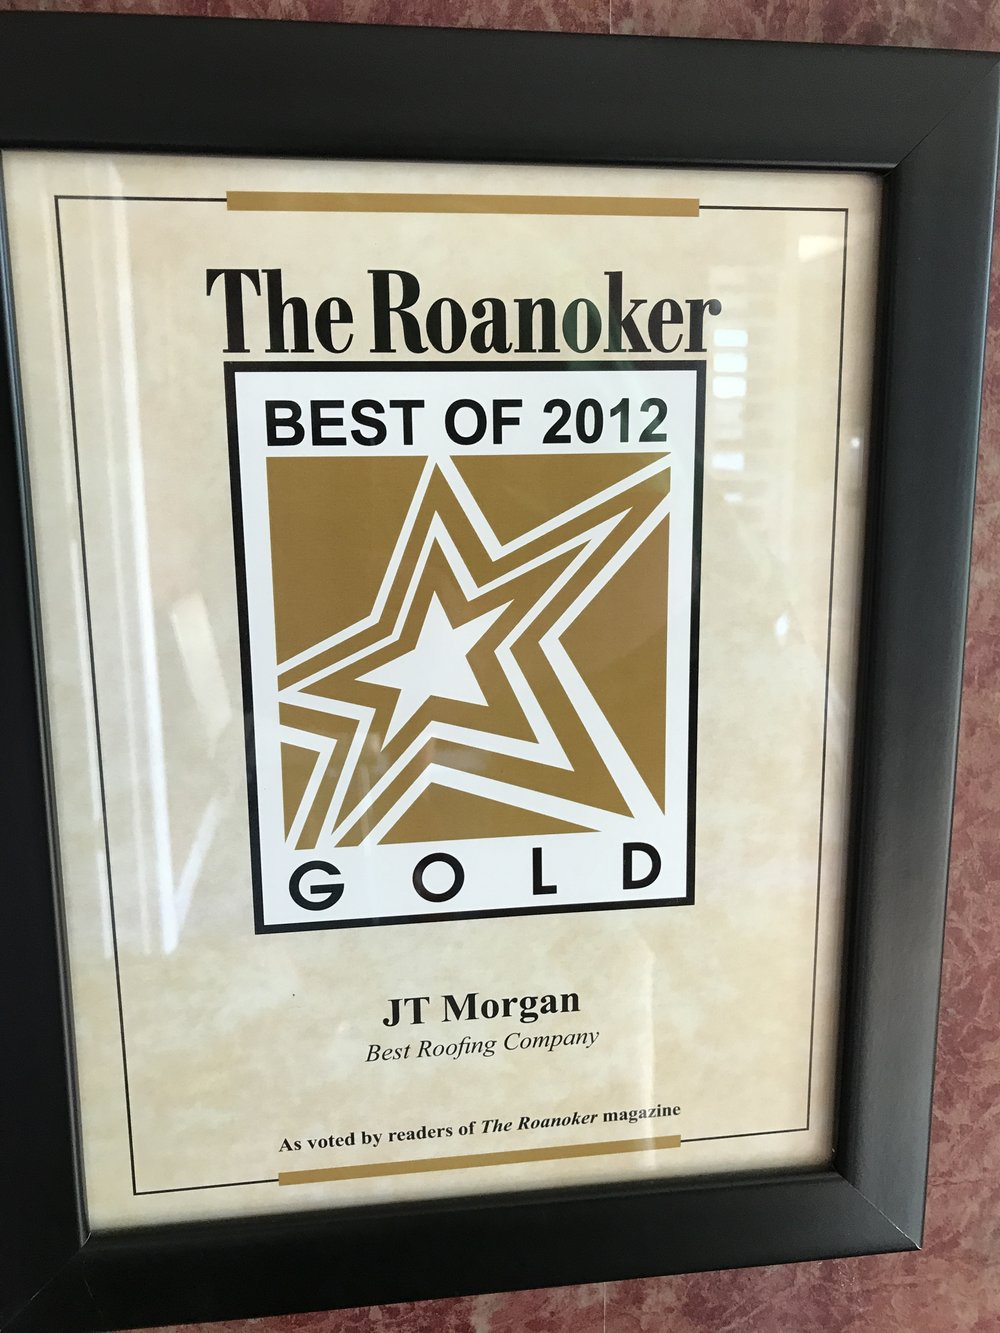 The Roanoker Best Roofing Company Gold